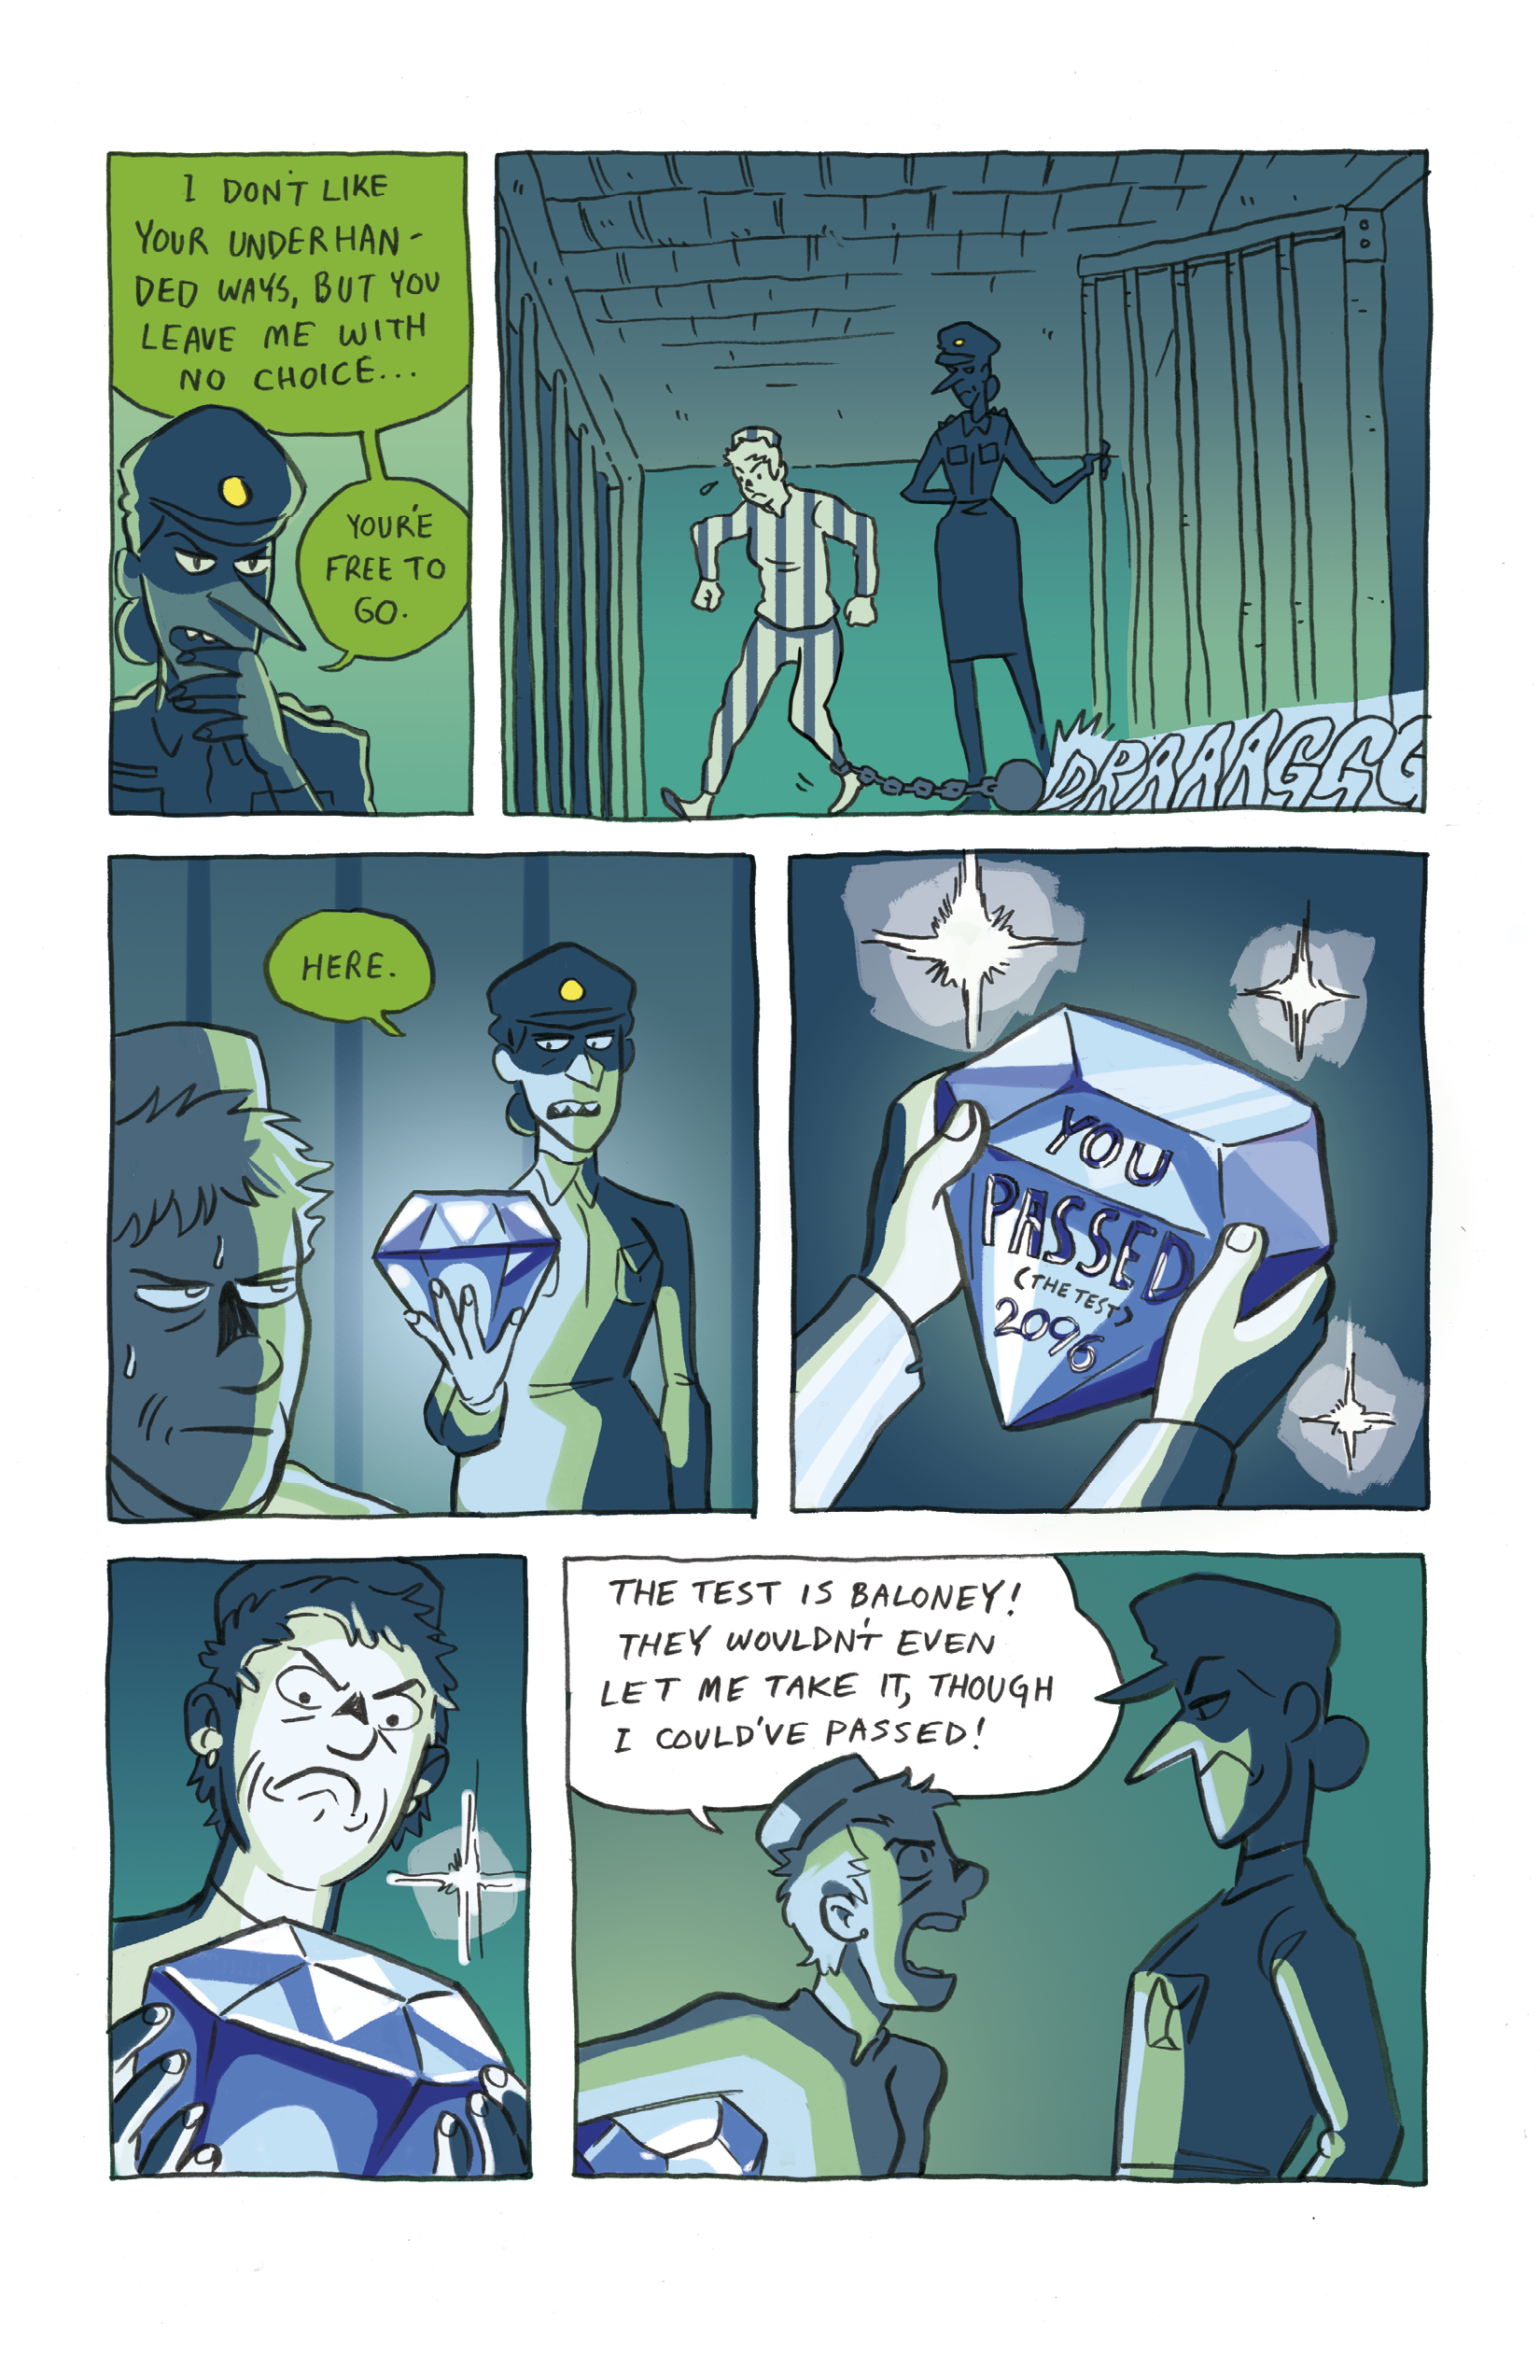 METANOIA_final_001_single_pages13.png